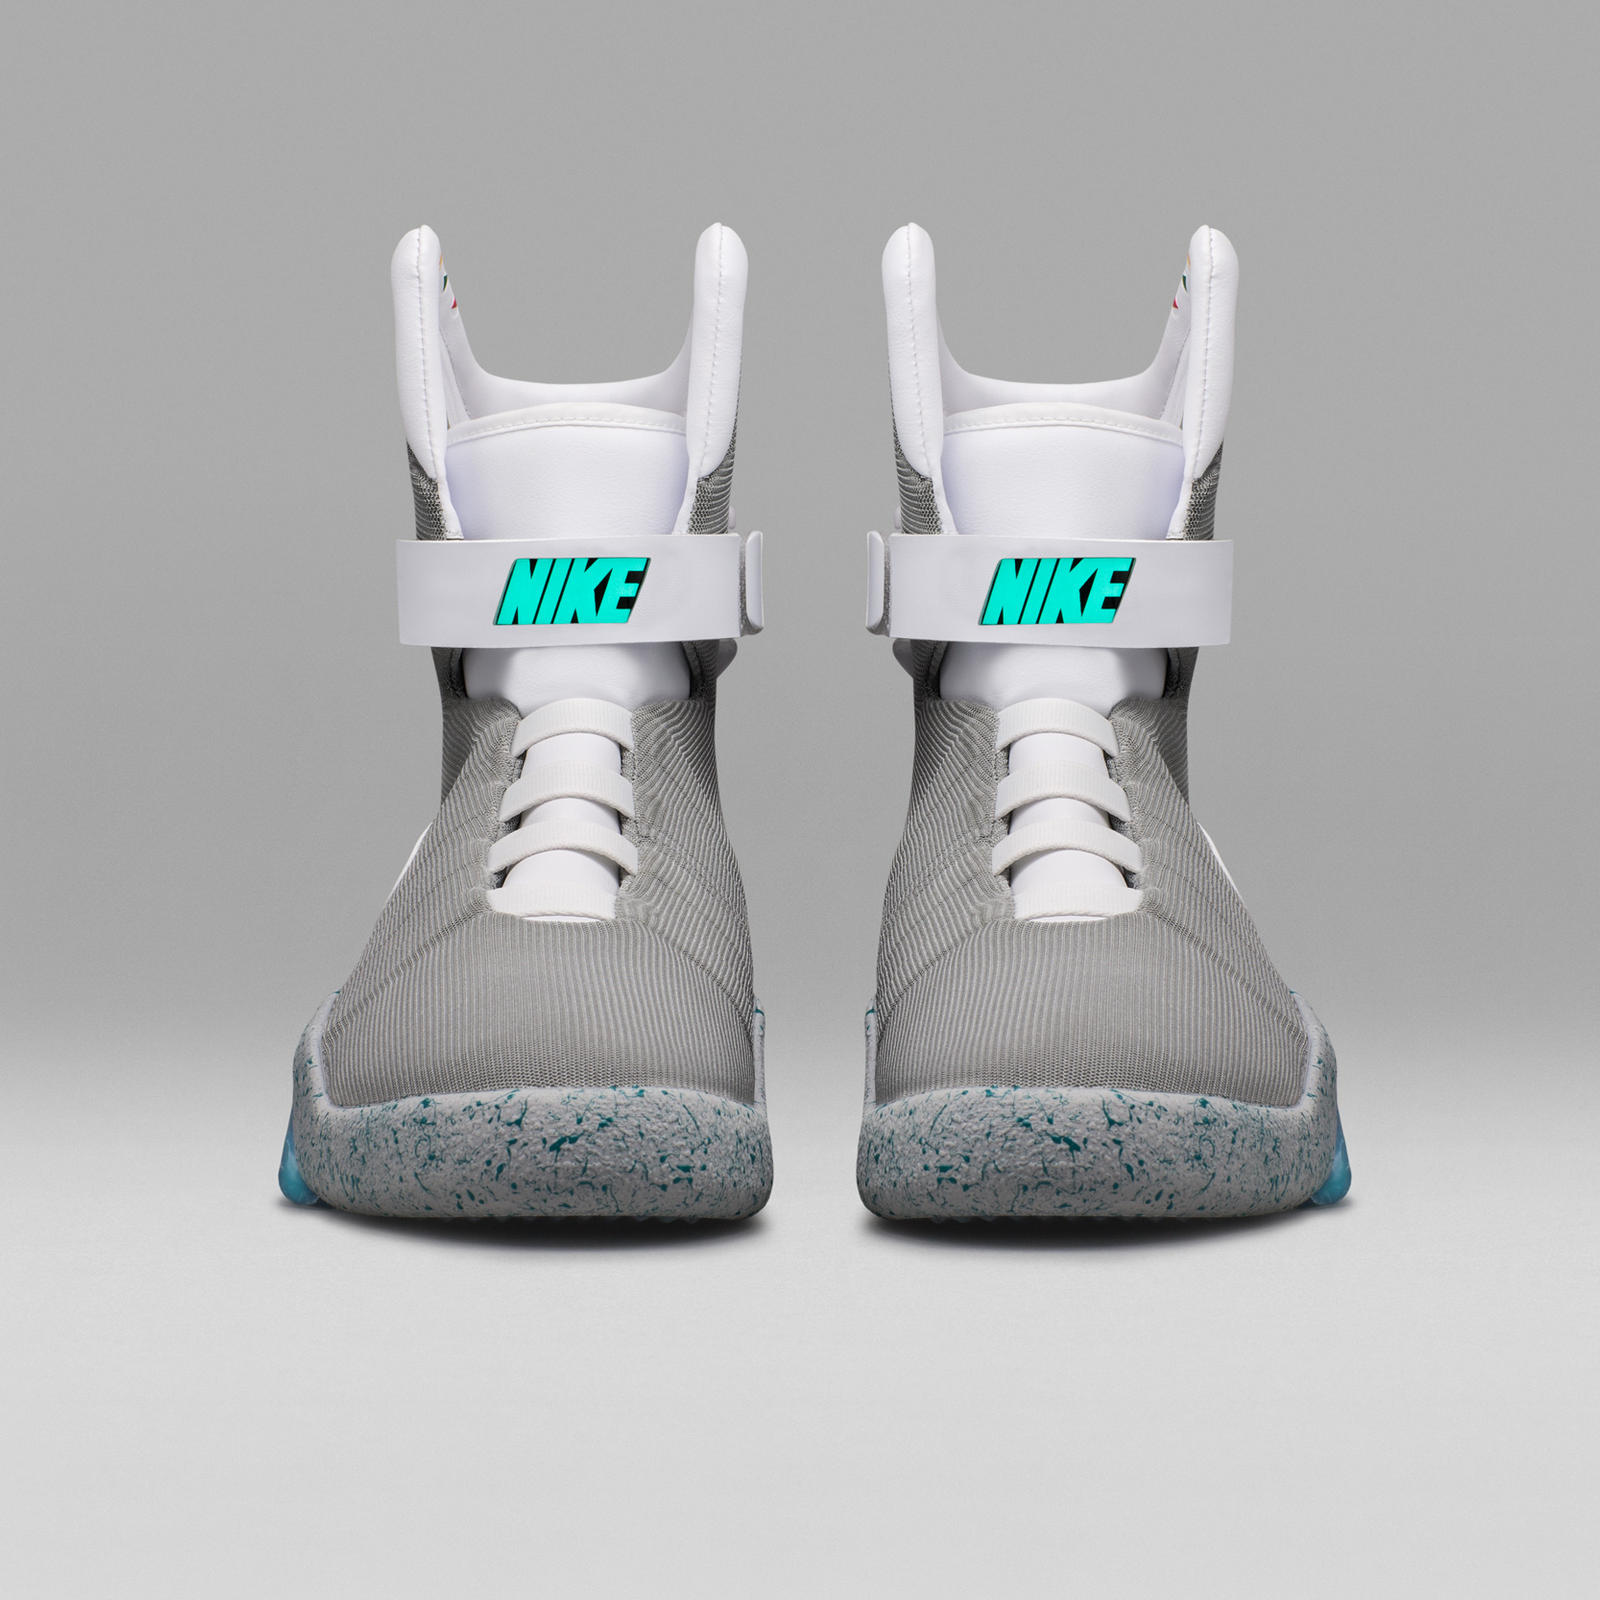 Buy nike air mags > Up to 59% Discounts